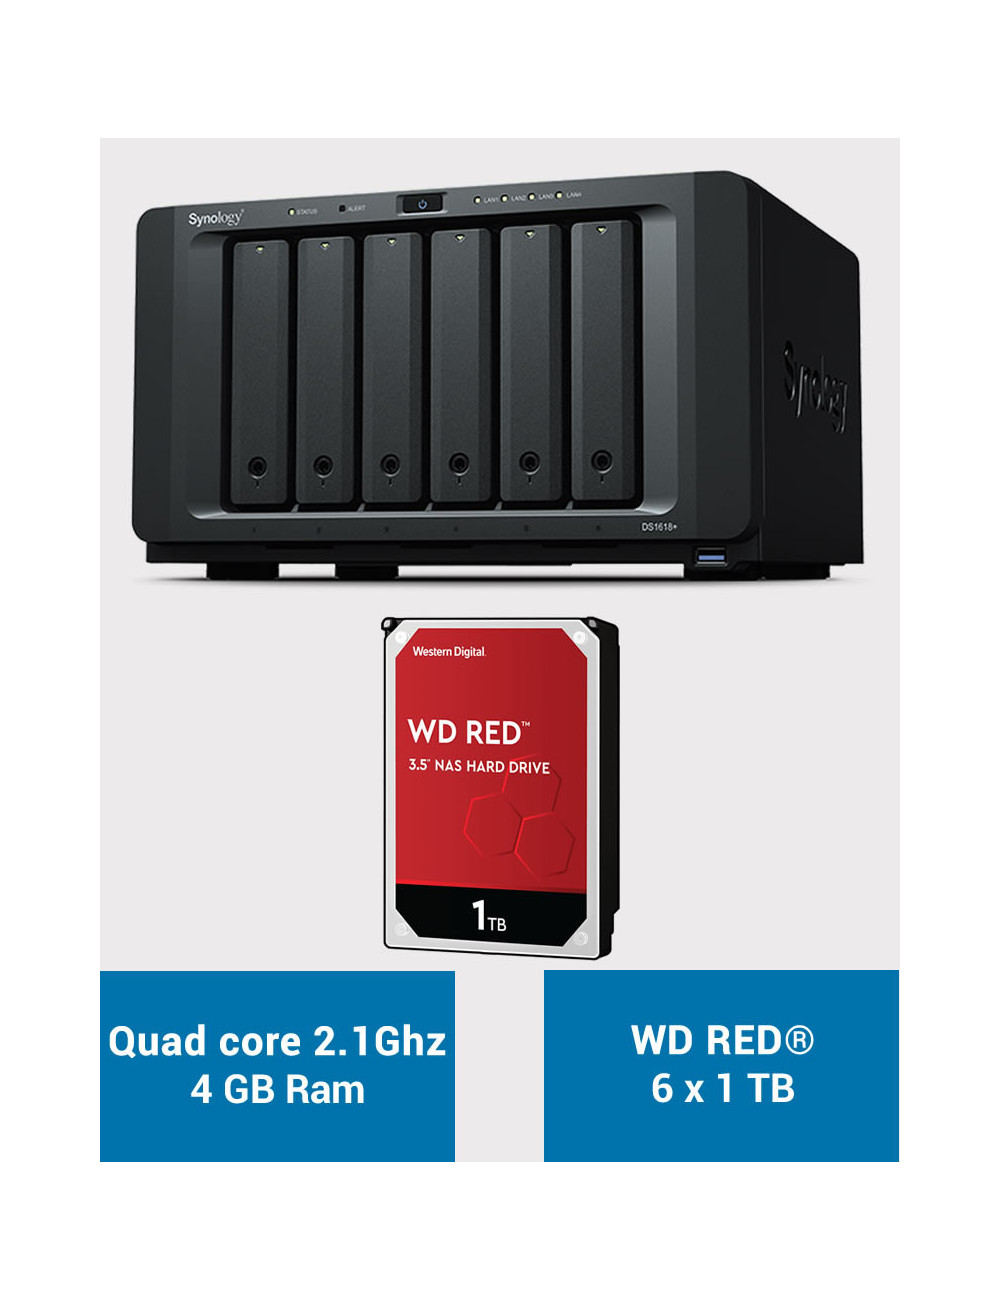 Synology DS1618+ Serveur NAS WD RED 6 To